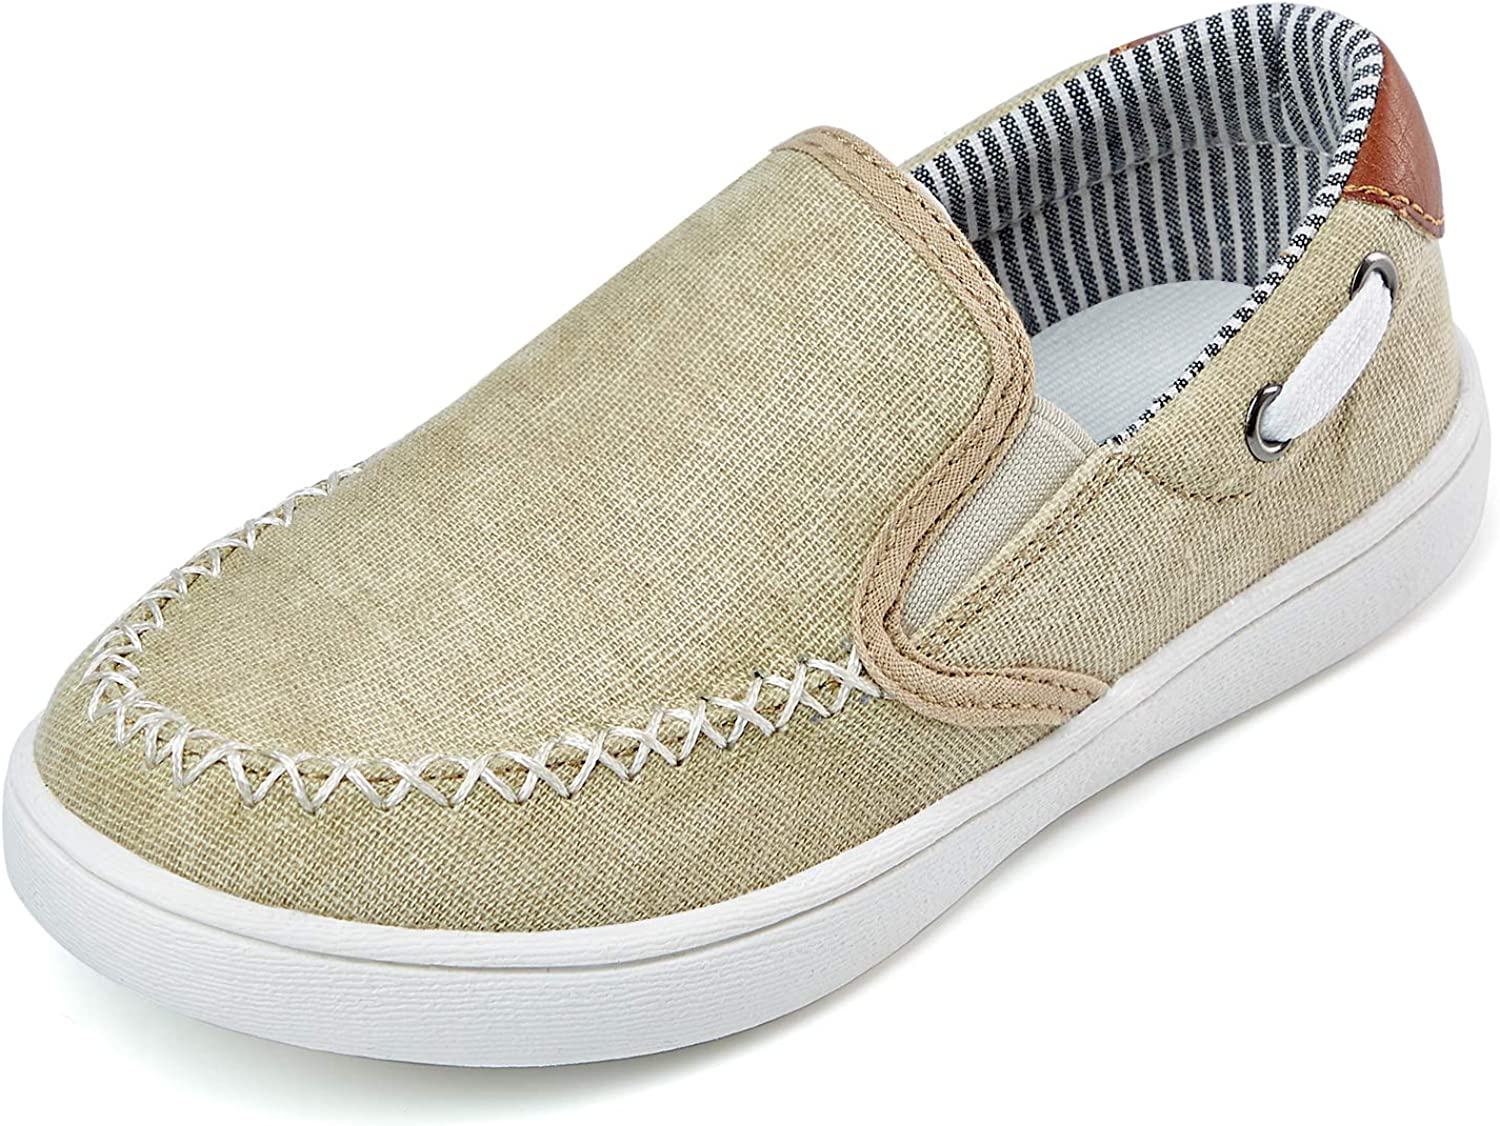 ZHILETAO Boys Casual Boat Shoes Girls Slip-on Loafer Kid's Classic Slip On Sneaker on Athletic Party School Daily Life(Toddler/Little Kid)